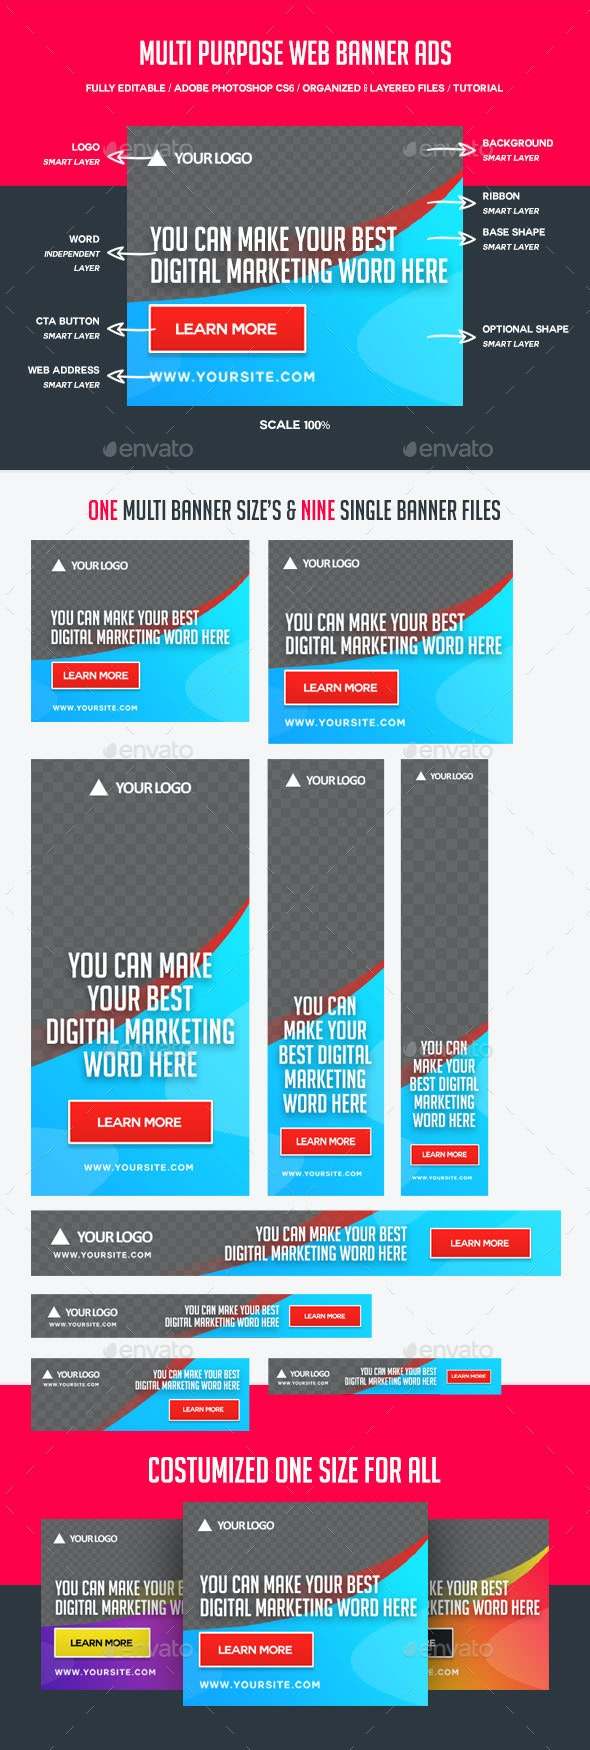 Multi Purpose Web Banner Ads - Banners & Ads Web Elements